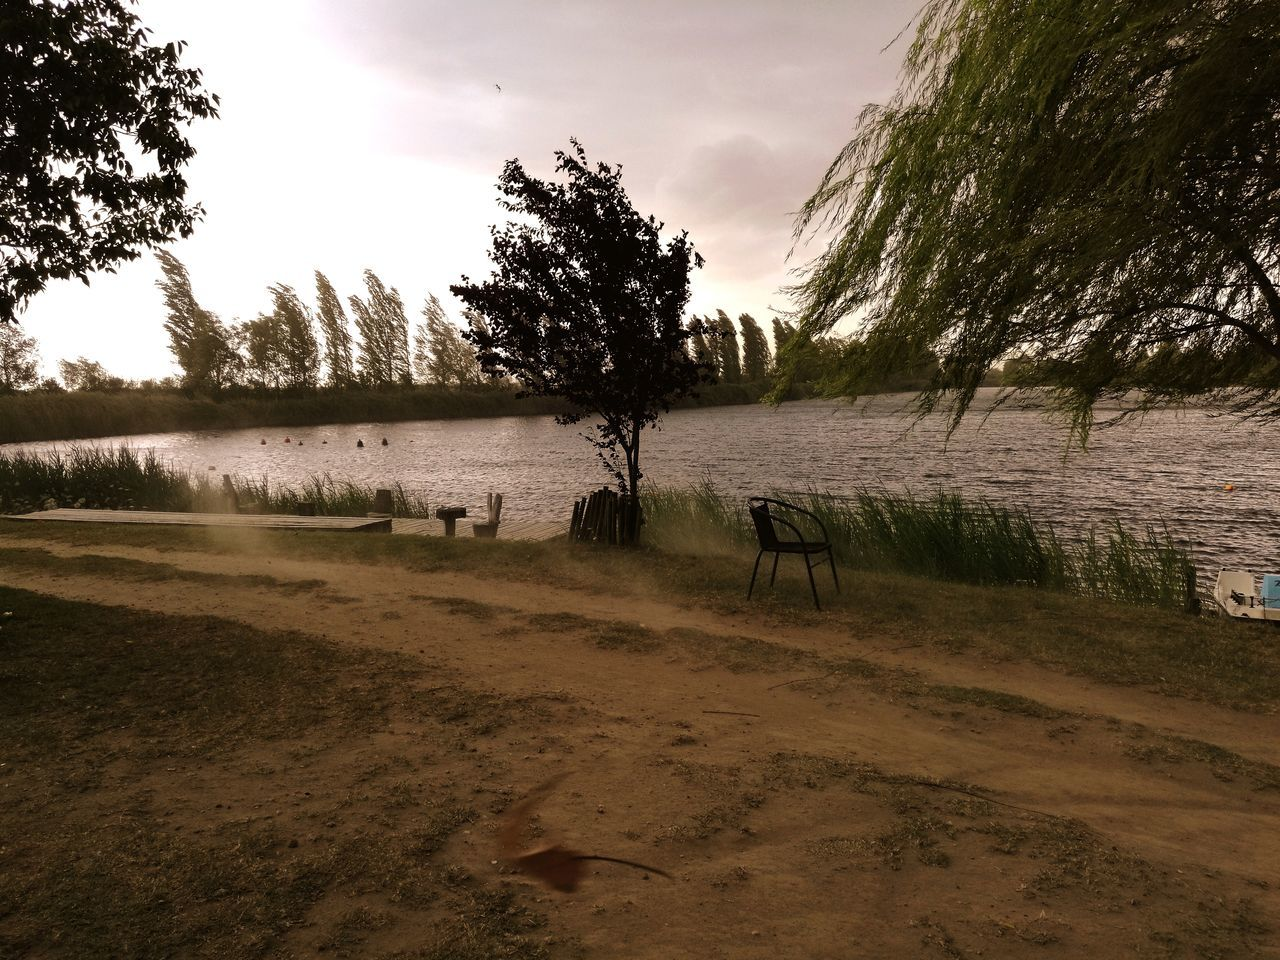 tree, nature, water, tranquility, tranquil scene, landscape, sky, scenics, no people, beauty in nature, grass, outdoors, lake, beach, sand, day, growth